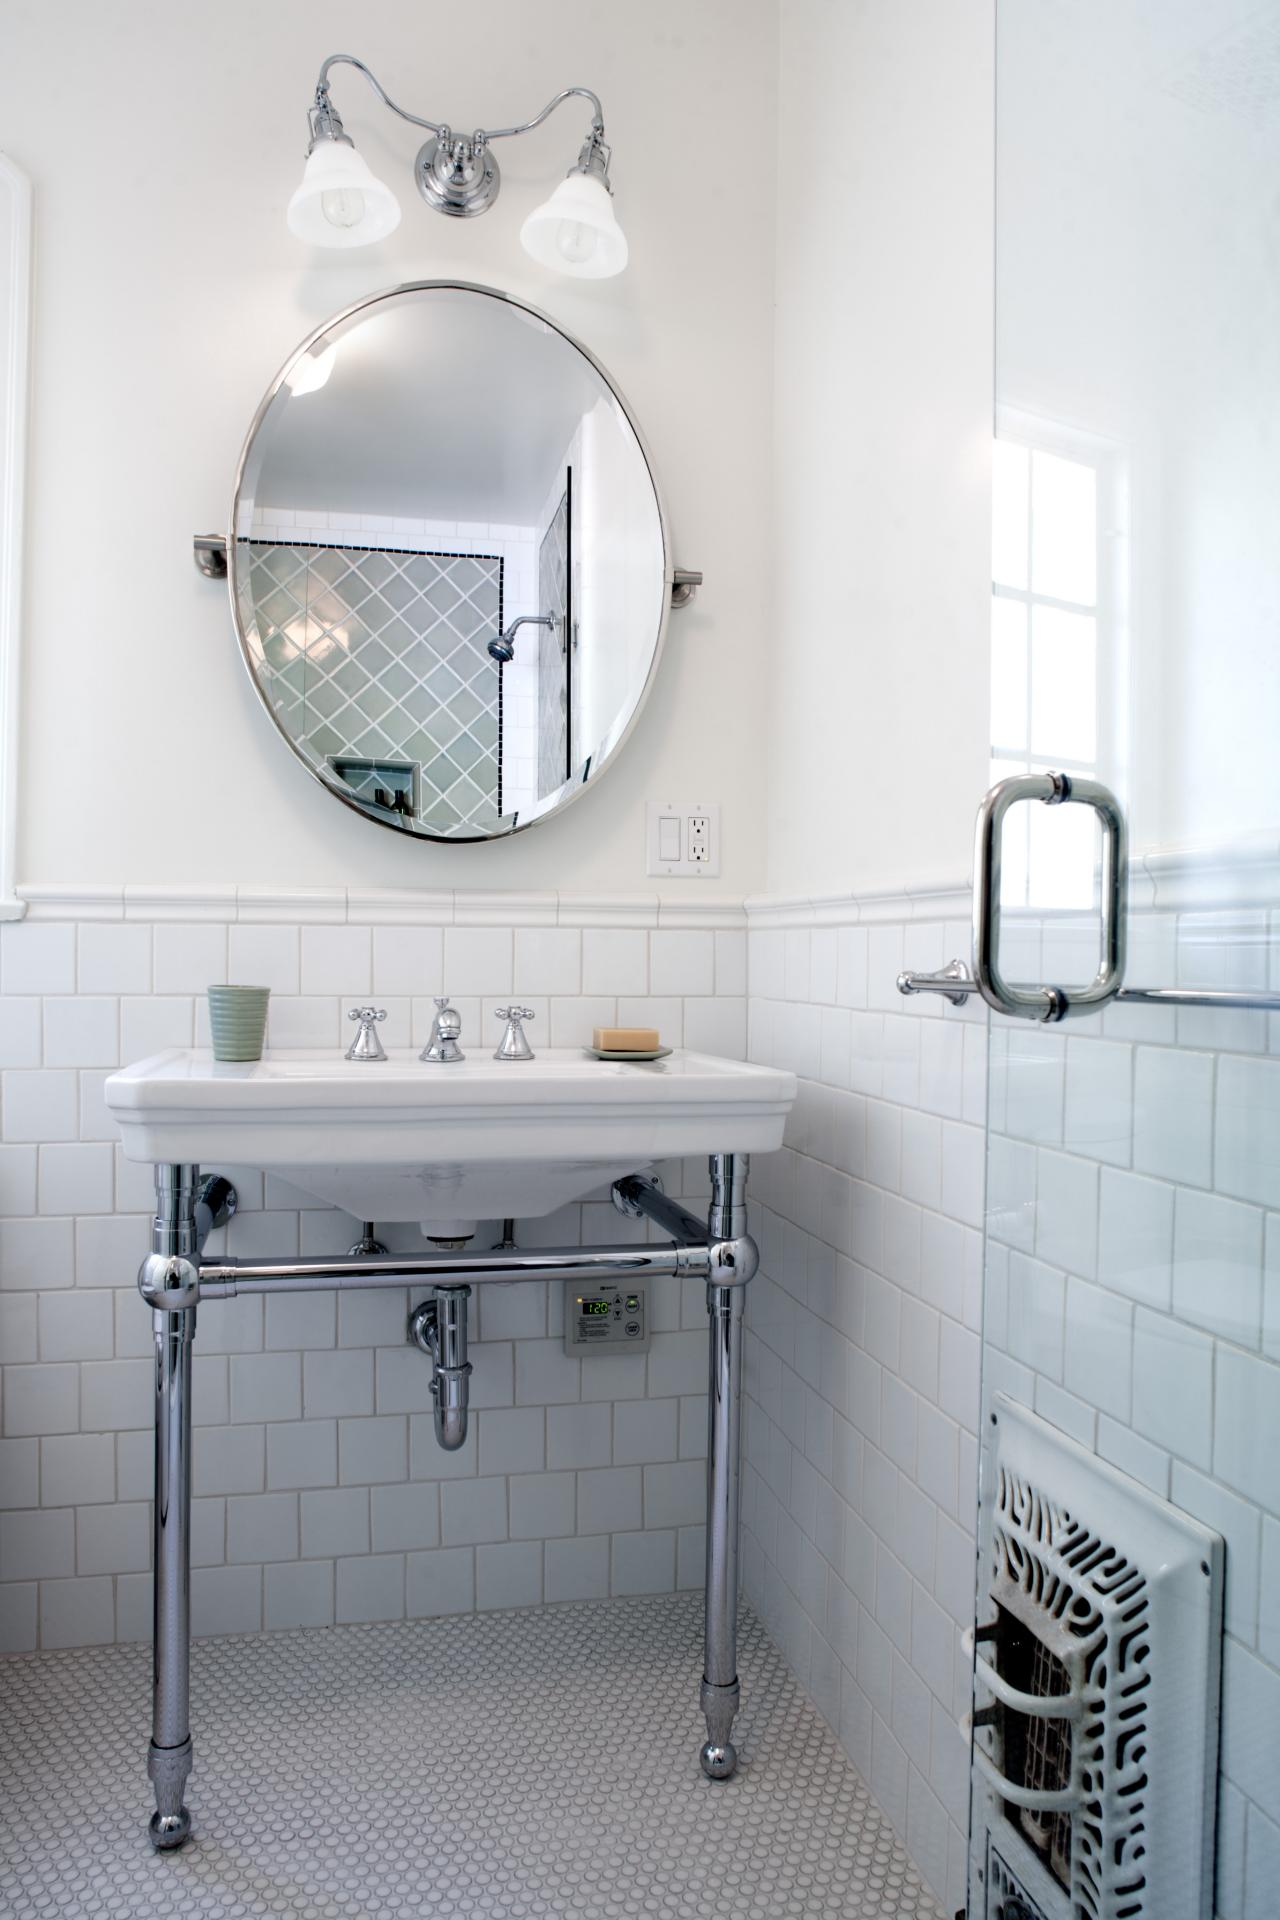 Jeff-Troyer-Associates_Whitley-Heights-Residence_Guest-Bath.jpg.rend.hgtvcom.1280.1920